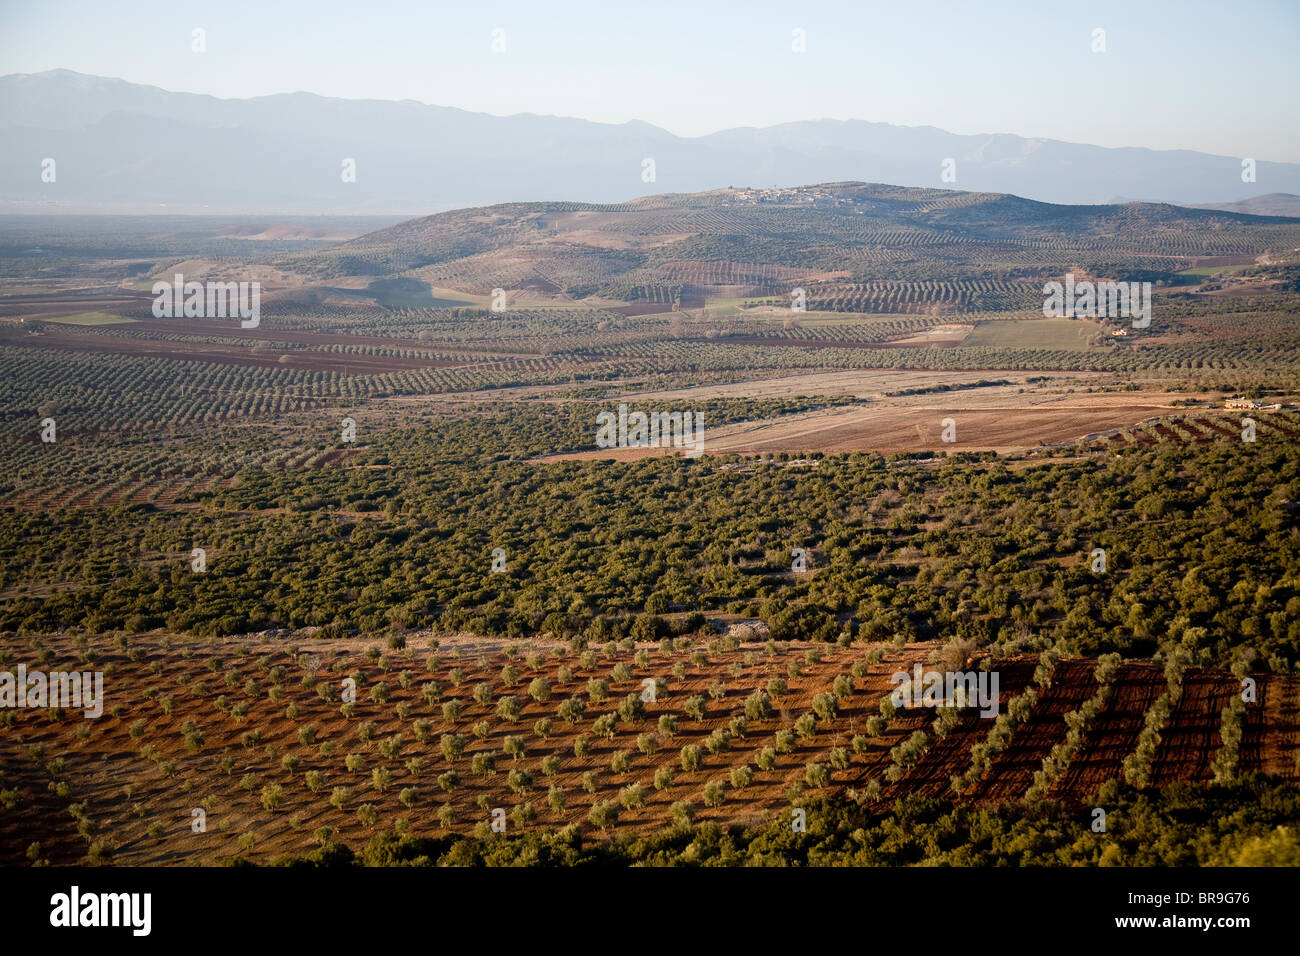 Countryside in Northern Syria. Stock Photo